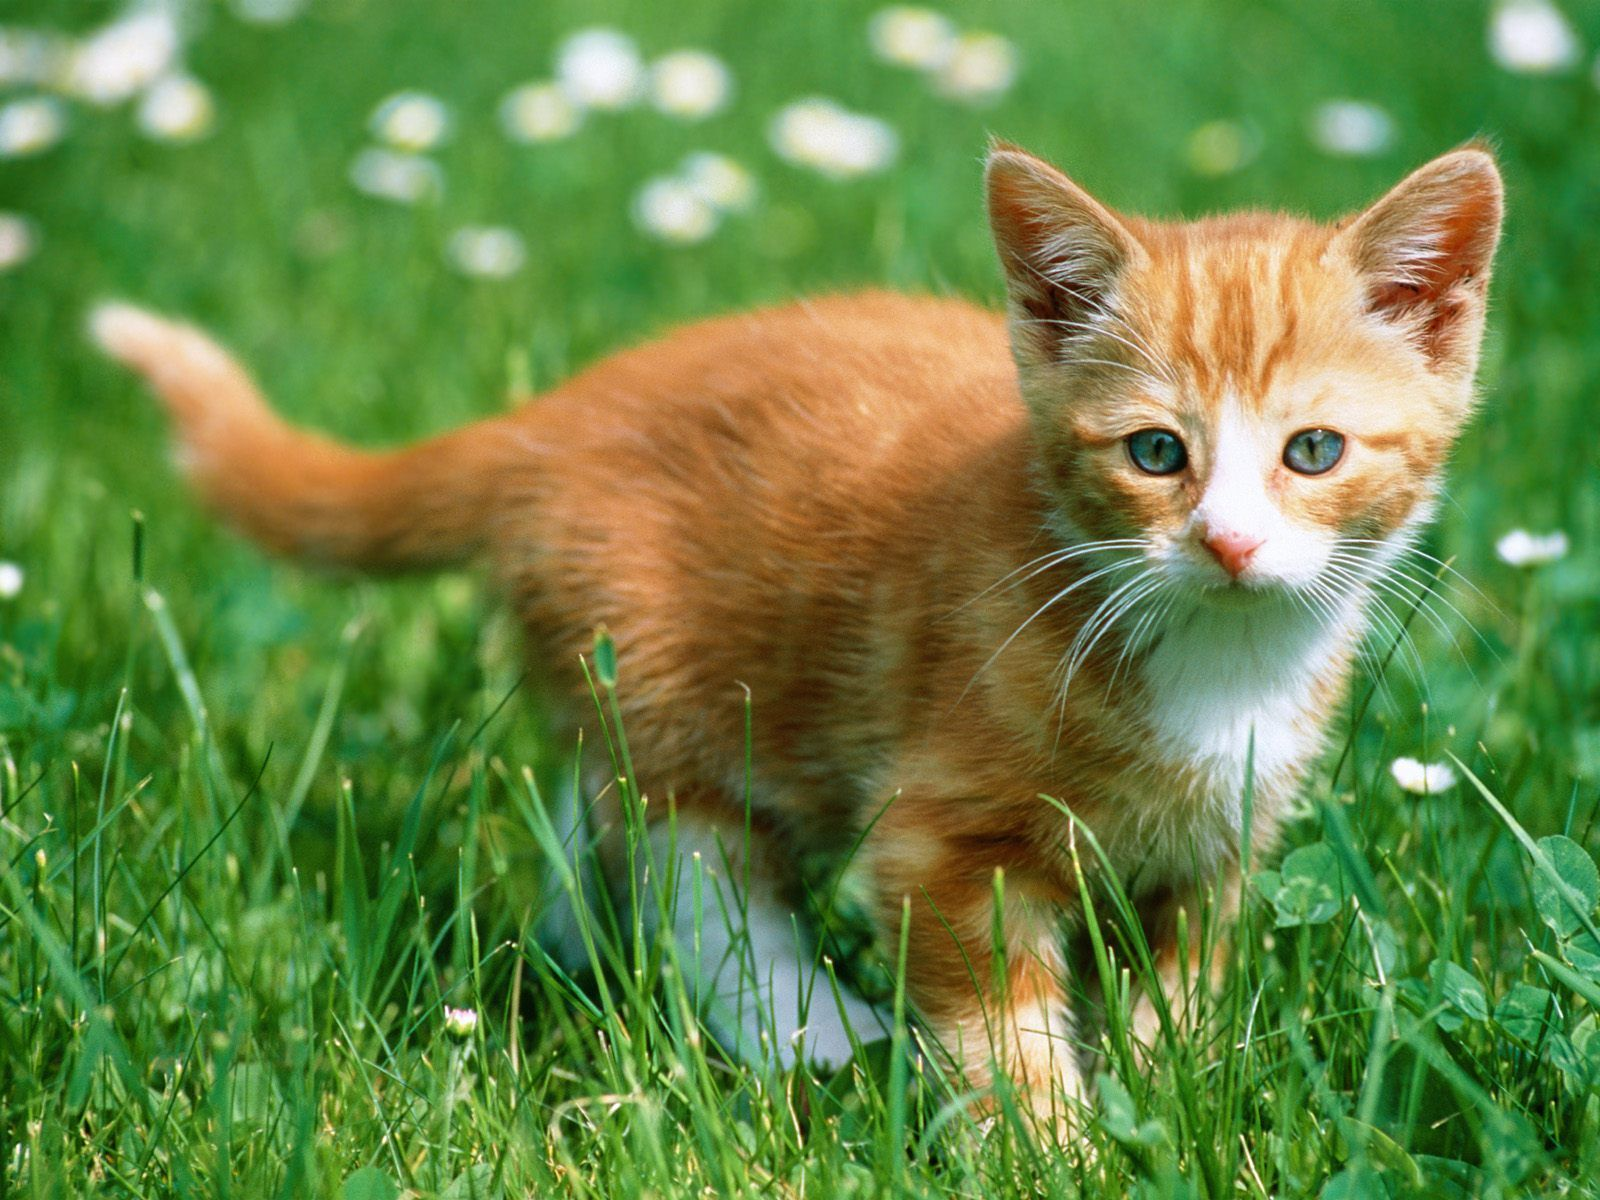 Kittens Of Cat Wallpapers Of Cats Wallpapers Of Cats And